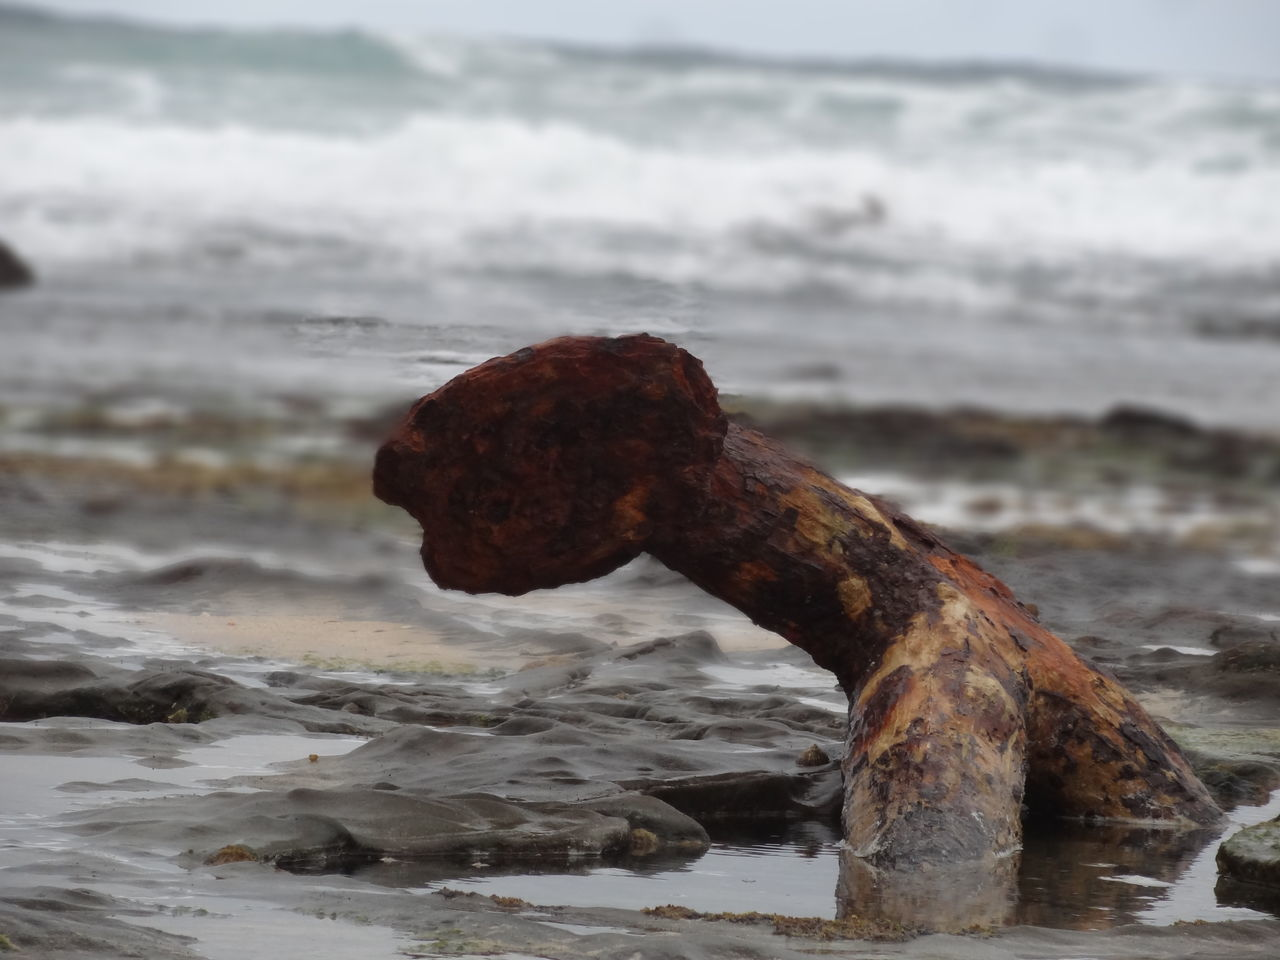 Anchor of a shipwreck, Victoria, Australia. Anchor Australia Australian Landscape Beach Close-up Day EyeEm Best Shots EyeEmNewHere History Horizon Over Water Los Nature No People Old Outdoors Rough Rusty S Sand Sea Shipwreck Shipwreck Beach Tragedy Water Wave